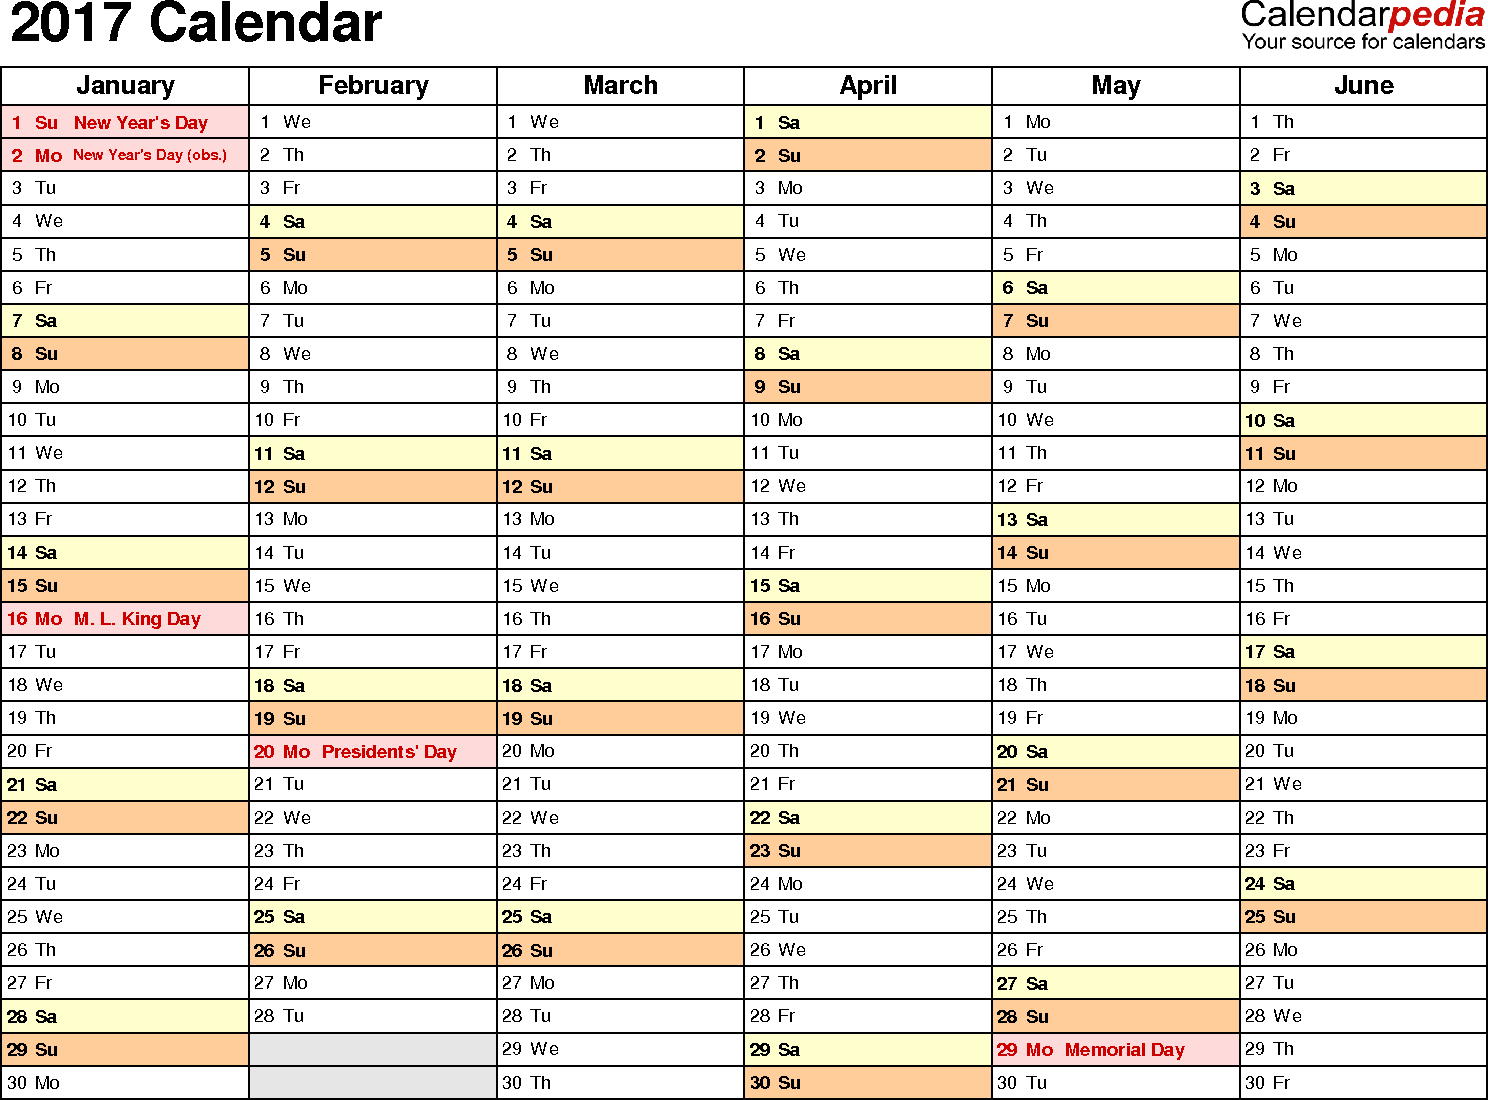 Ediblewildsus  Unique  Calendar  Download  Free Printable Excel Templates Xls With Heavenly Template   Calendar For Excel Months Horizontally  Pages Landscape Orientation With Breathtaking Microsoft Excel  Practice Test Also Excel Vba Tricks In Addition Index If Excel And Excel Numerical Integration As Well As Excel Histogram Bin Additionally How Do You Make An Excel Spreadsheet From Calendarpediacom With Ediblewildsus  Heavenly  Calendar  Download  Free Printable Excel Templates Xls With Breathtaking Template   Calendar For Excel Months Horizontally  Pages Landscape Orientation And Unique Microsoft Excel  Practice Test Also Excel Vba Tricks In Addition Index If Excel From Calendarpediacom